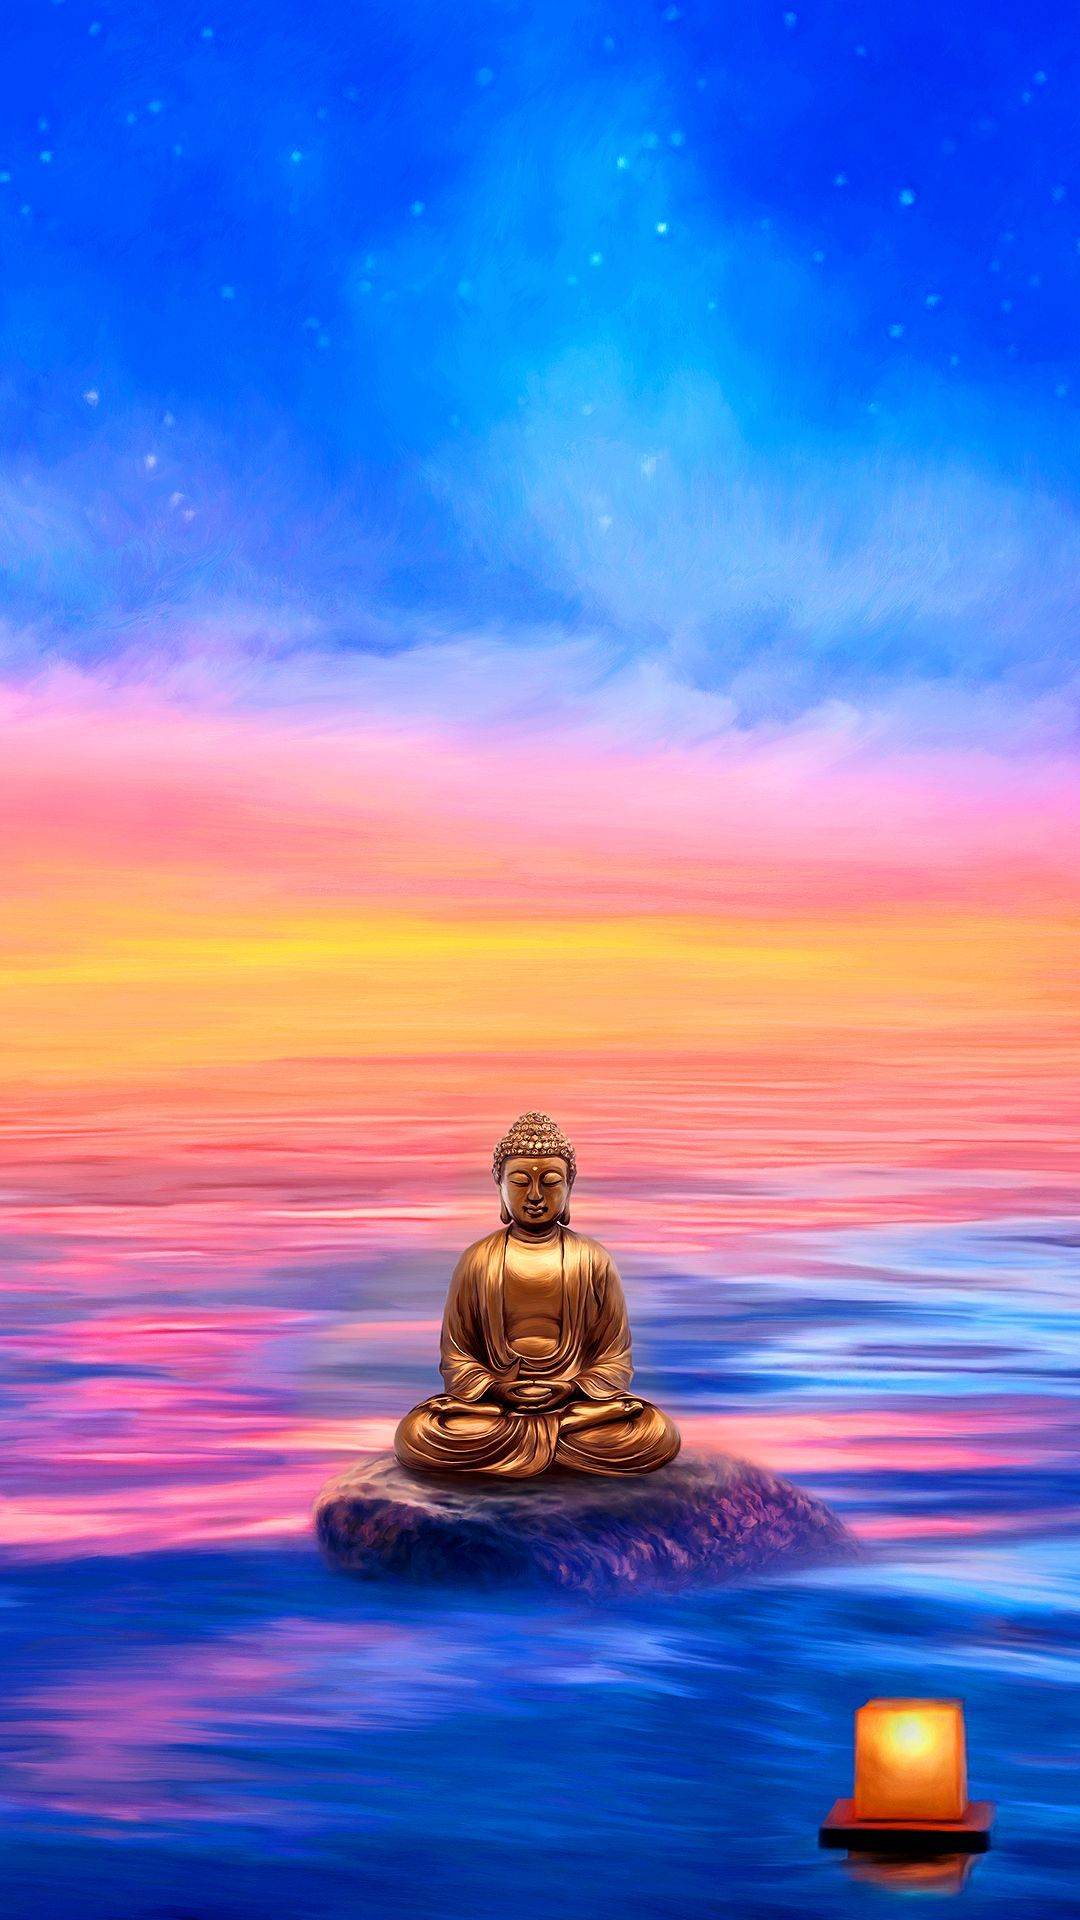 1080x1920 Buddha Wallpaper for Mobile Devices – Artwork by GoodVibesGallery ...